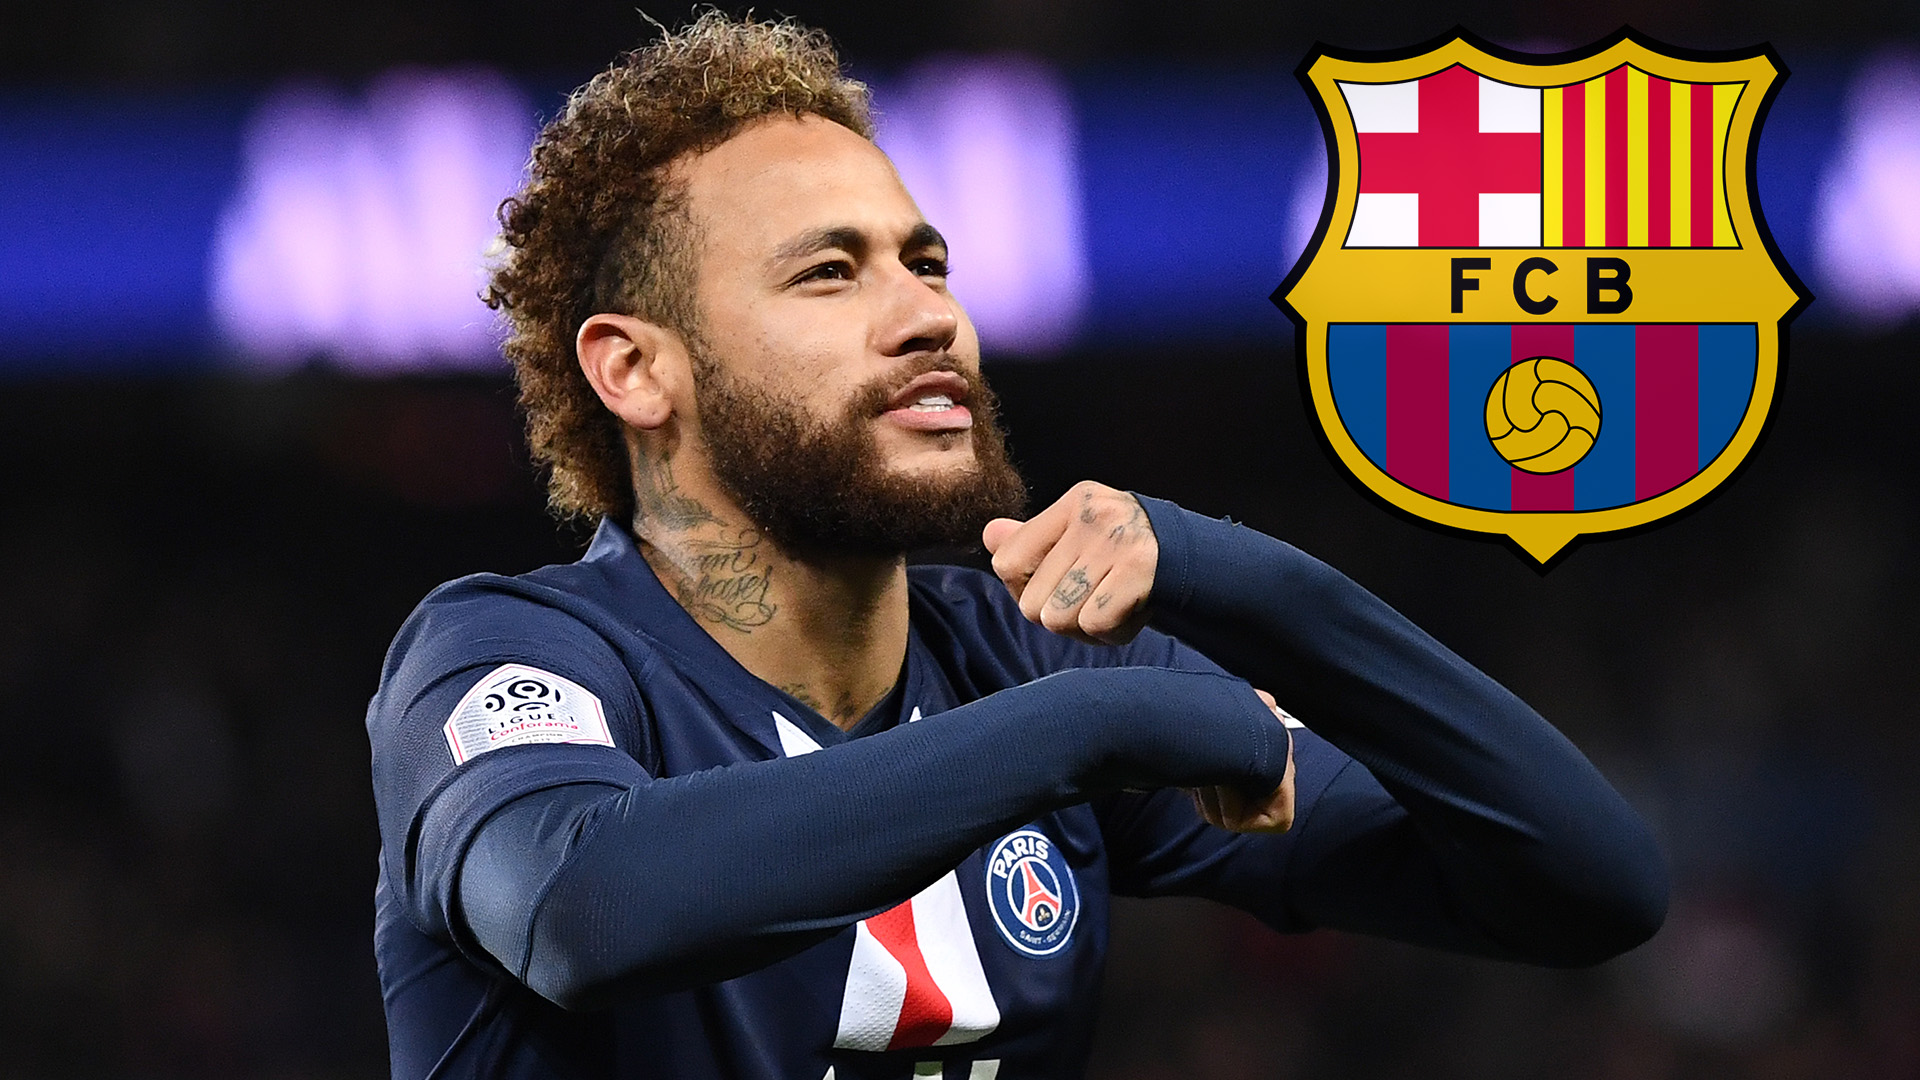 'Neymar has no reason to rejoin chaos at Barcelona' – PSG stay is the right call, says Rivaldo